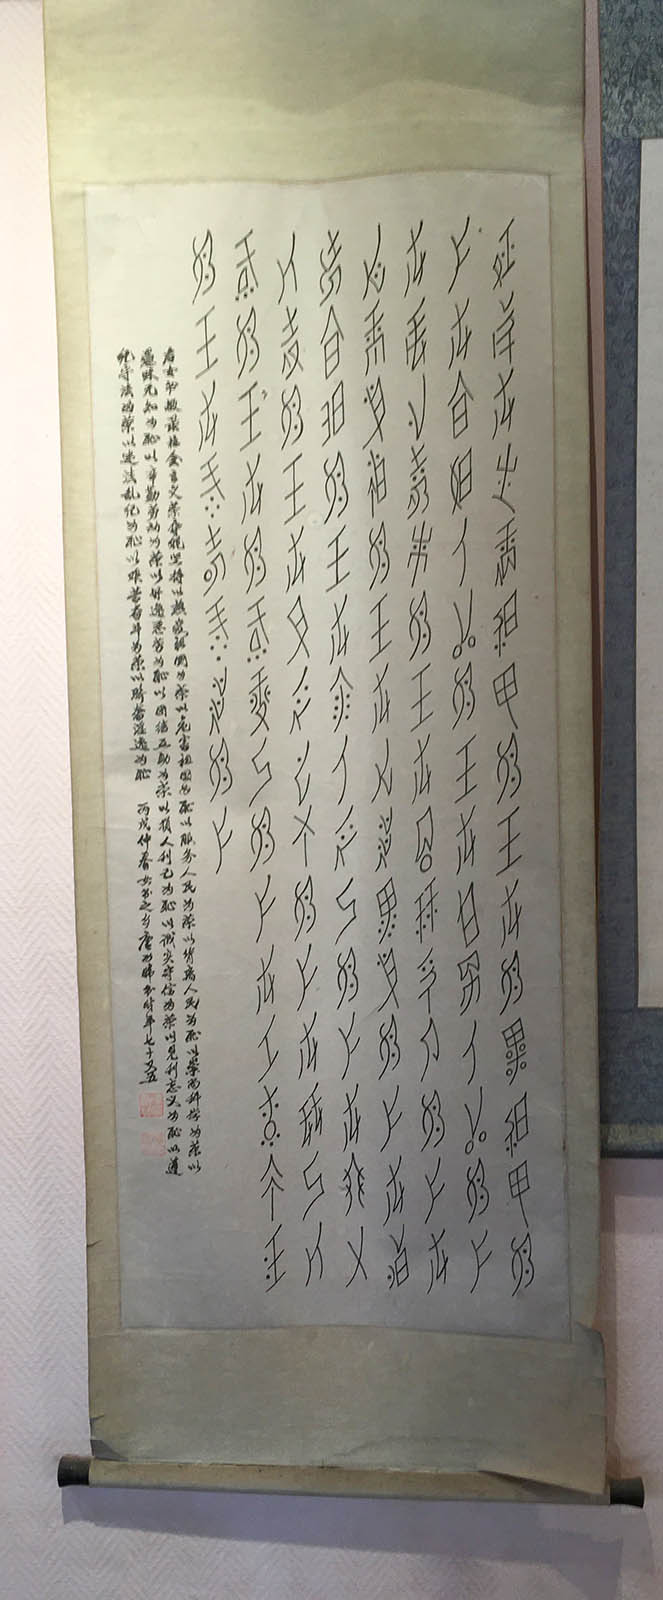 Nüshu calligraphy on a vertical scroll by male calligrapher